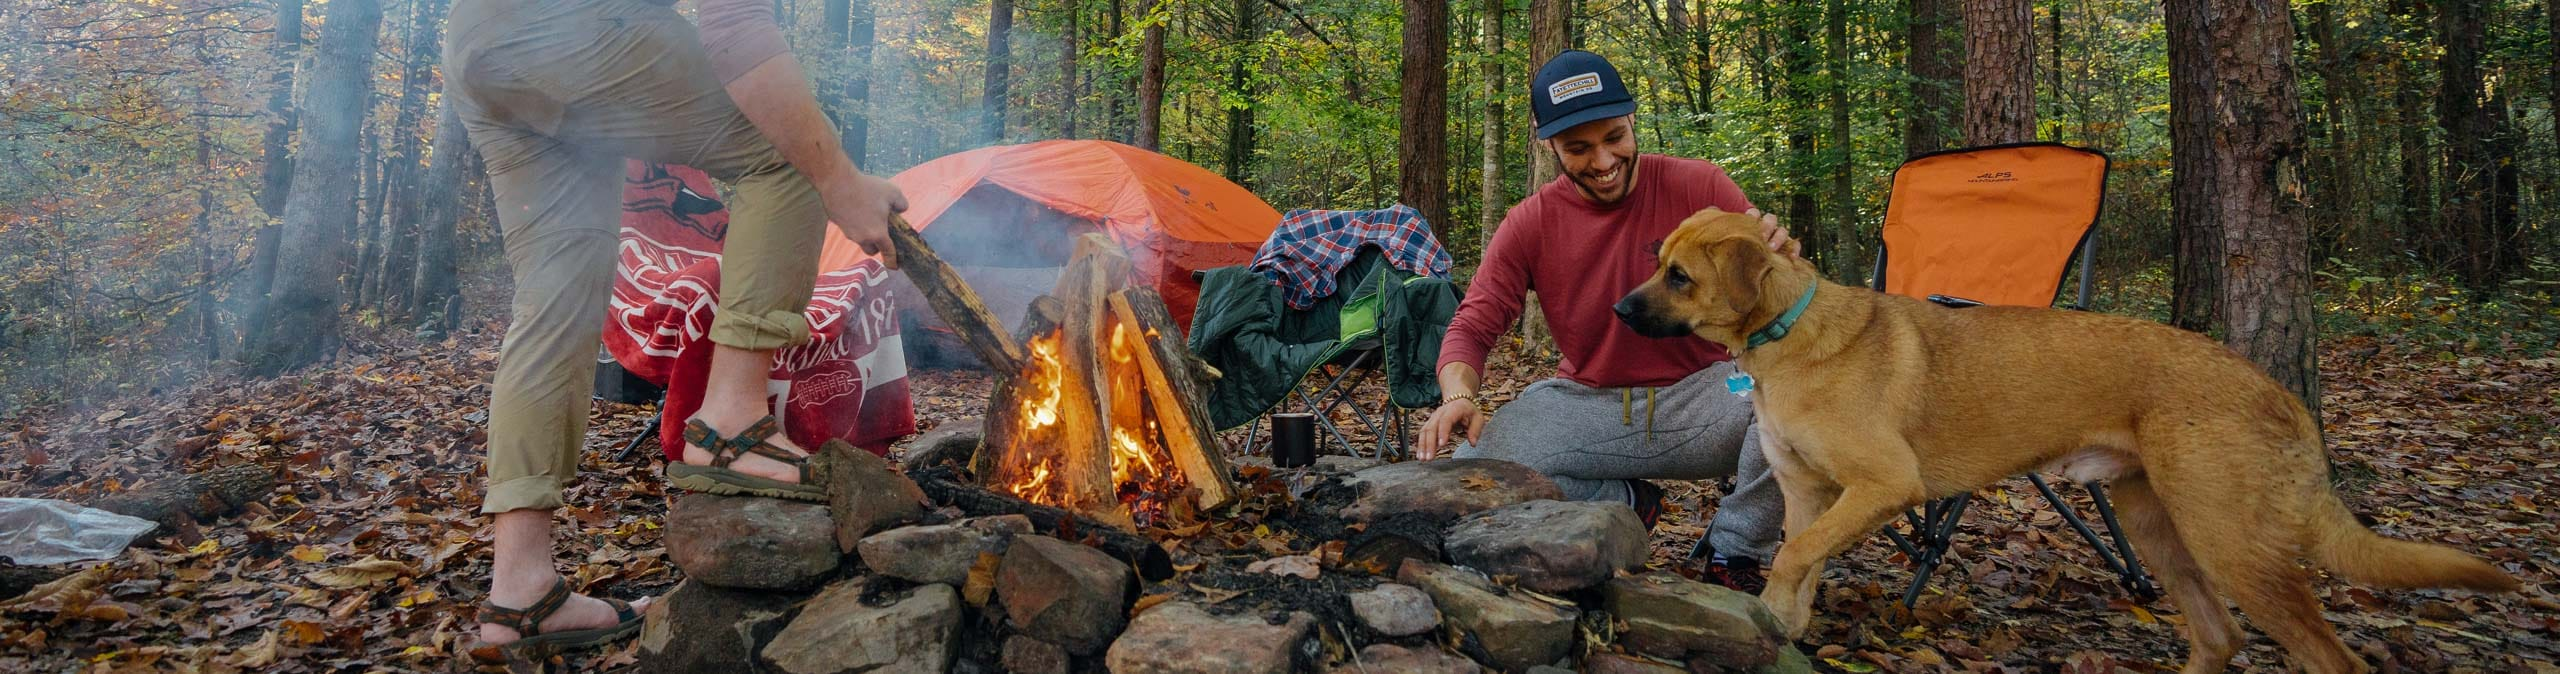 two men and a dog building a fire while camping